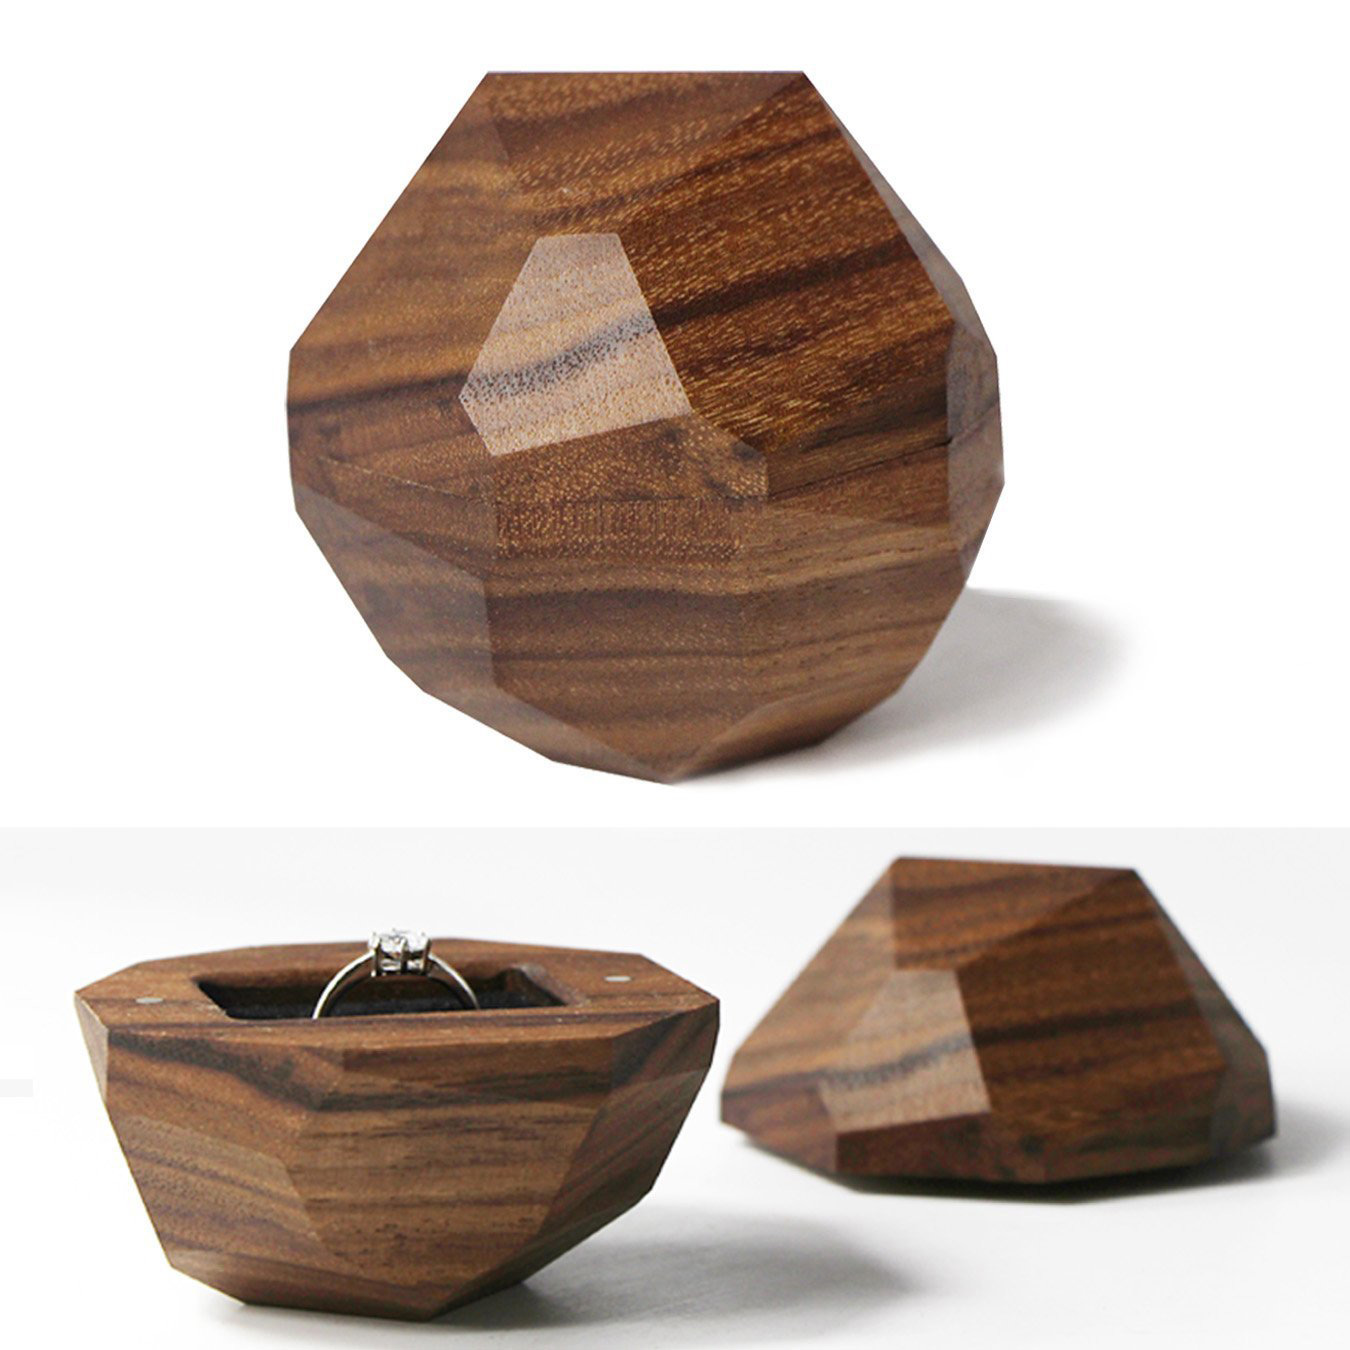 Creative Wooden Rock Shaped Engagement Ring Box